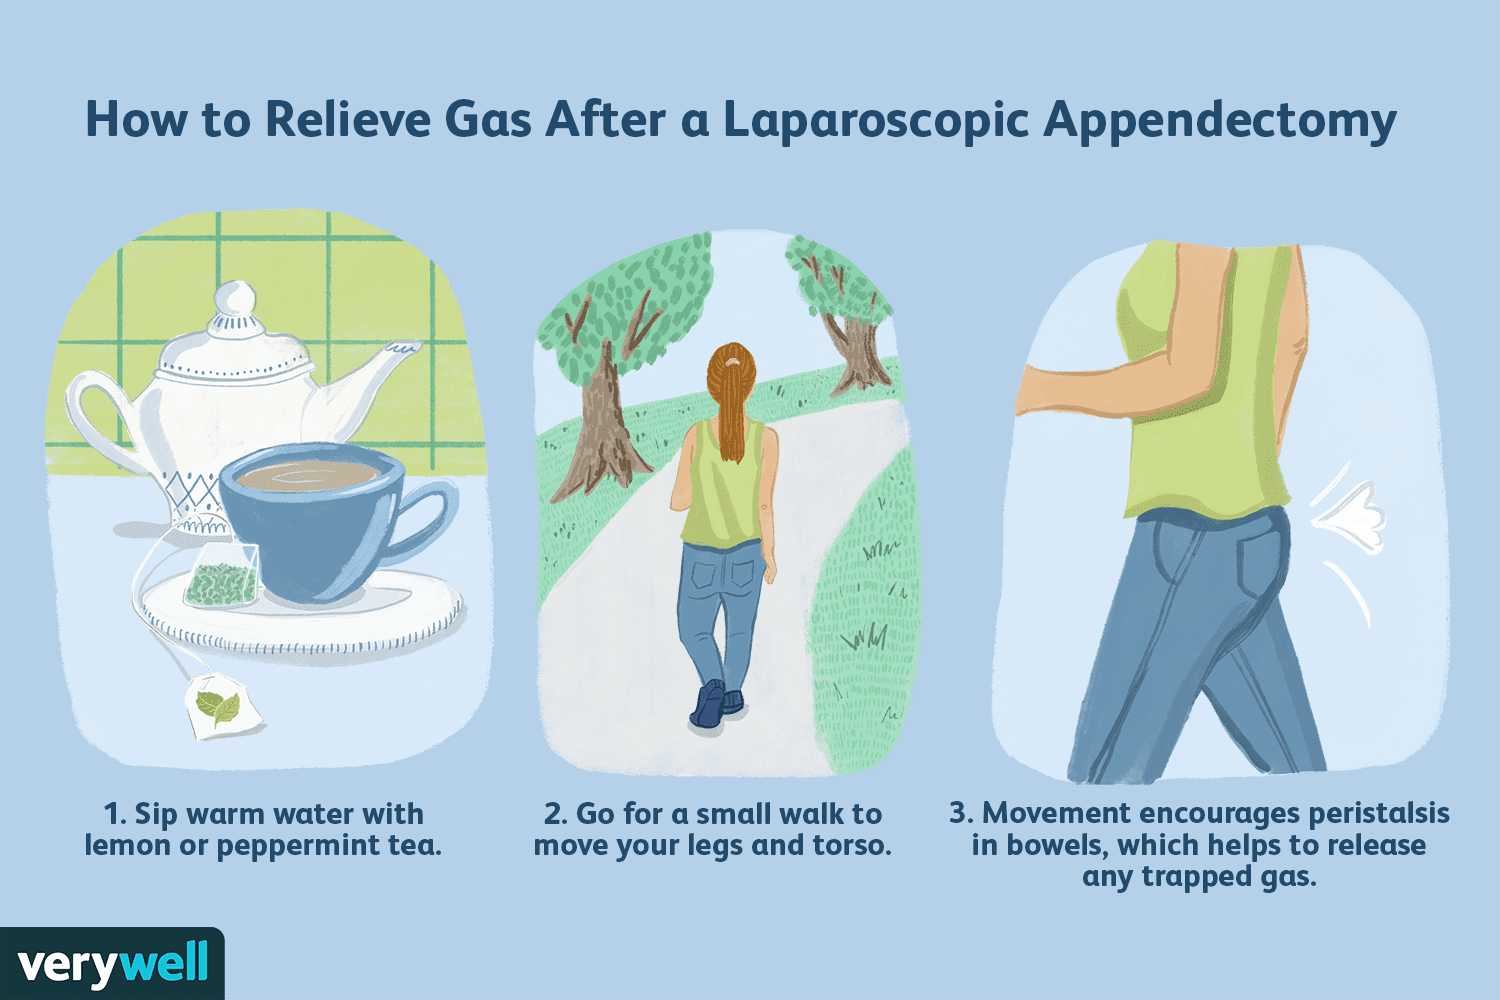 How to Relieve Gas After a Laparoscopic Appendectomy